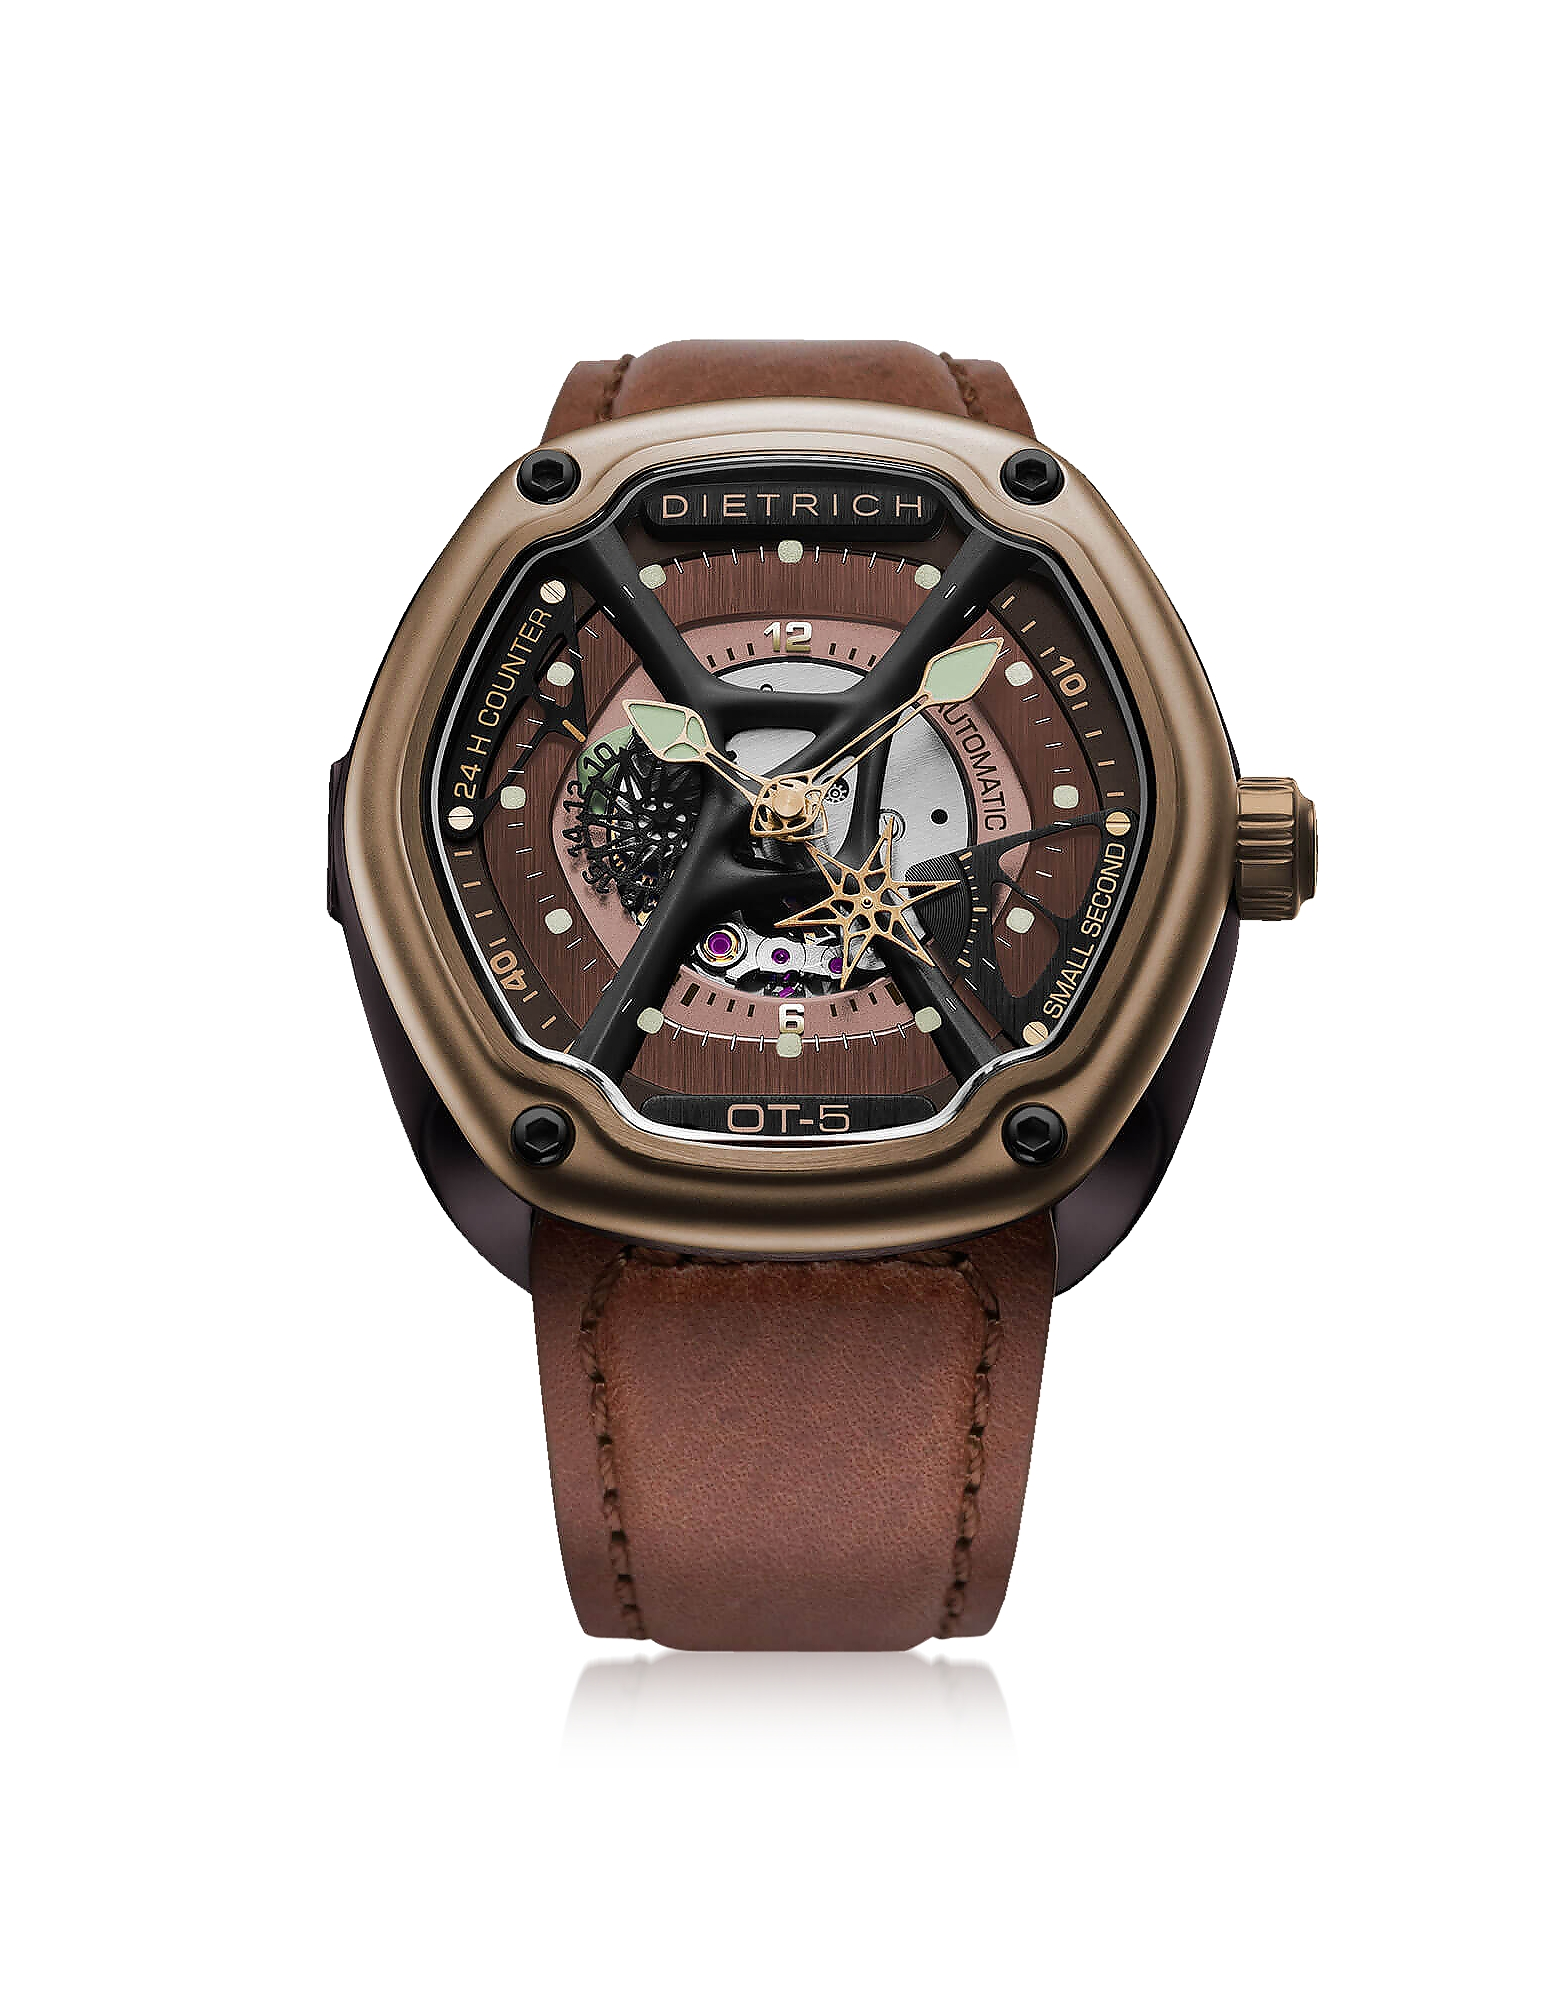 Dietrich Men's Watches, OT-5 316L Bronze Steel Men's Watch w/Luminova and Brown Leather Strap